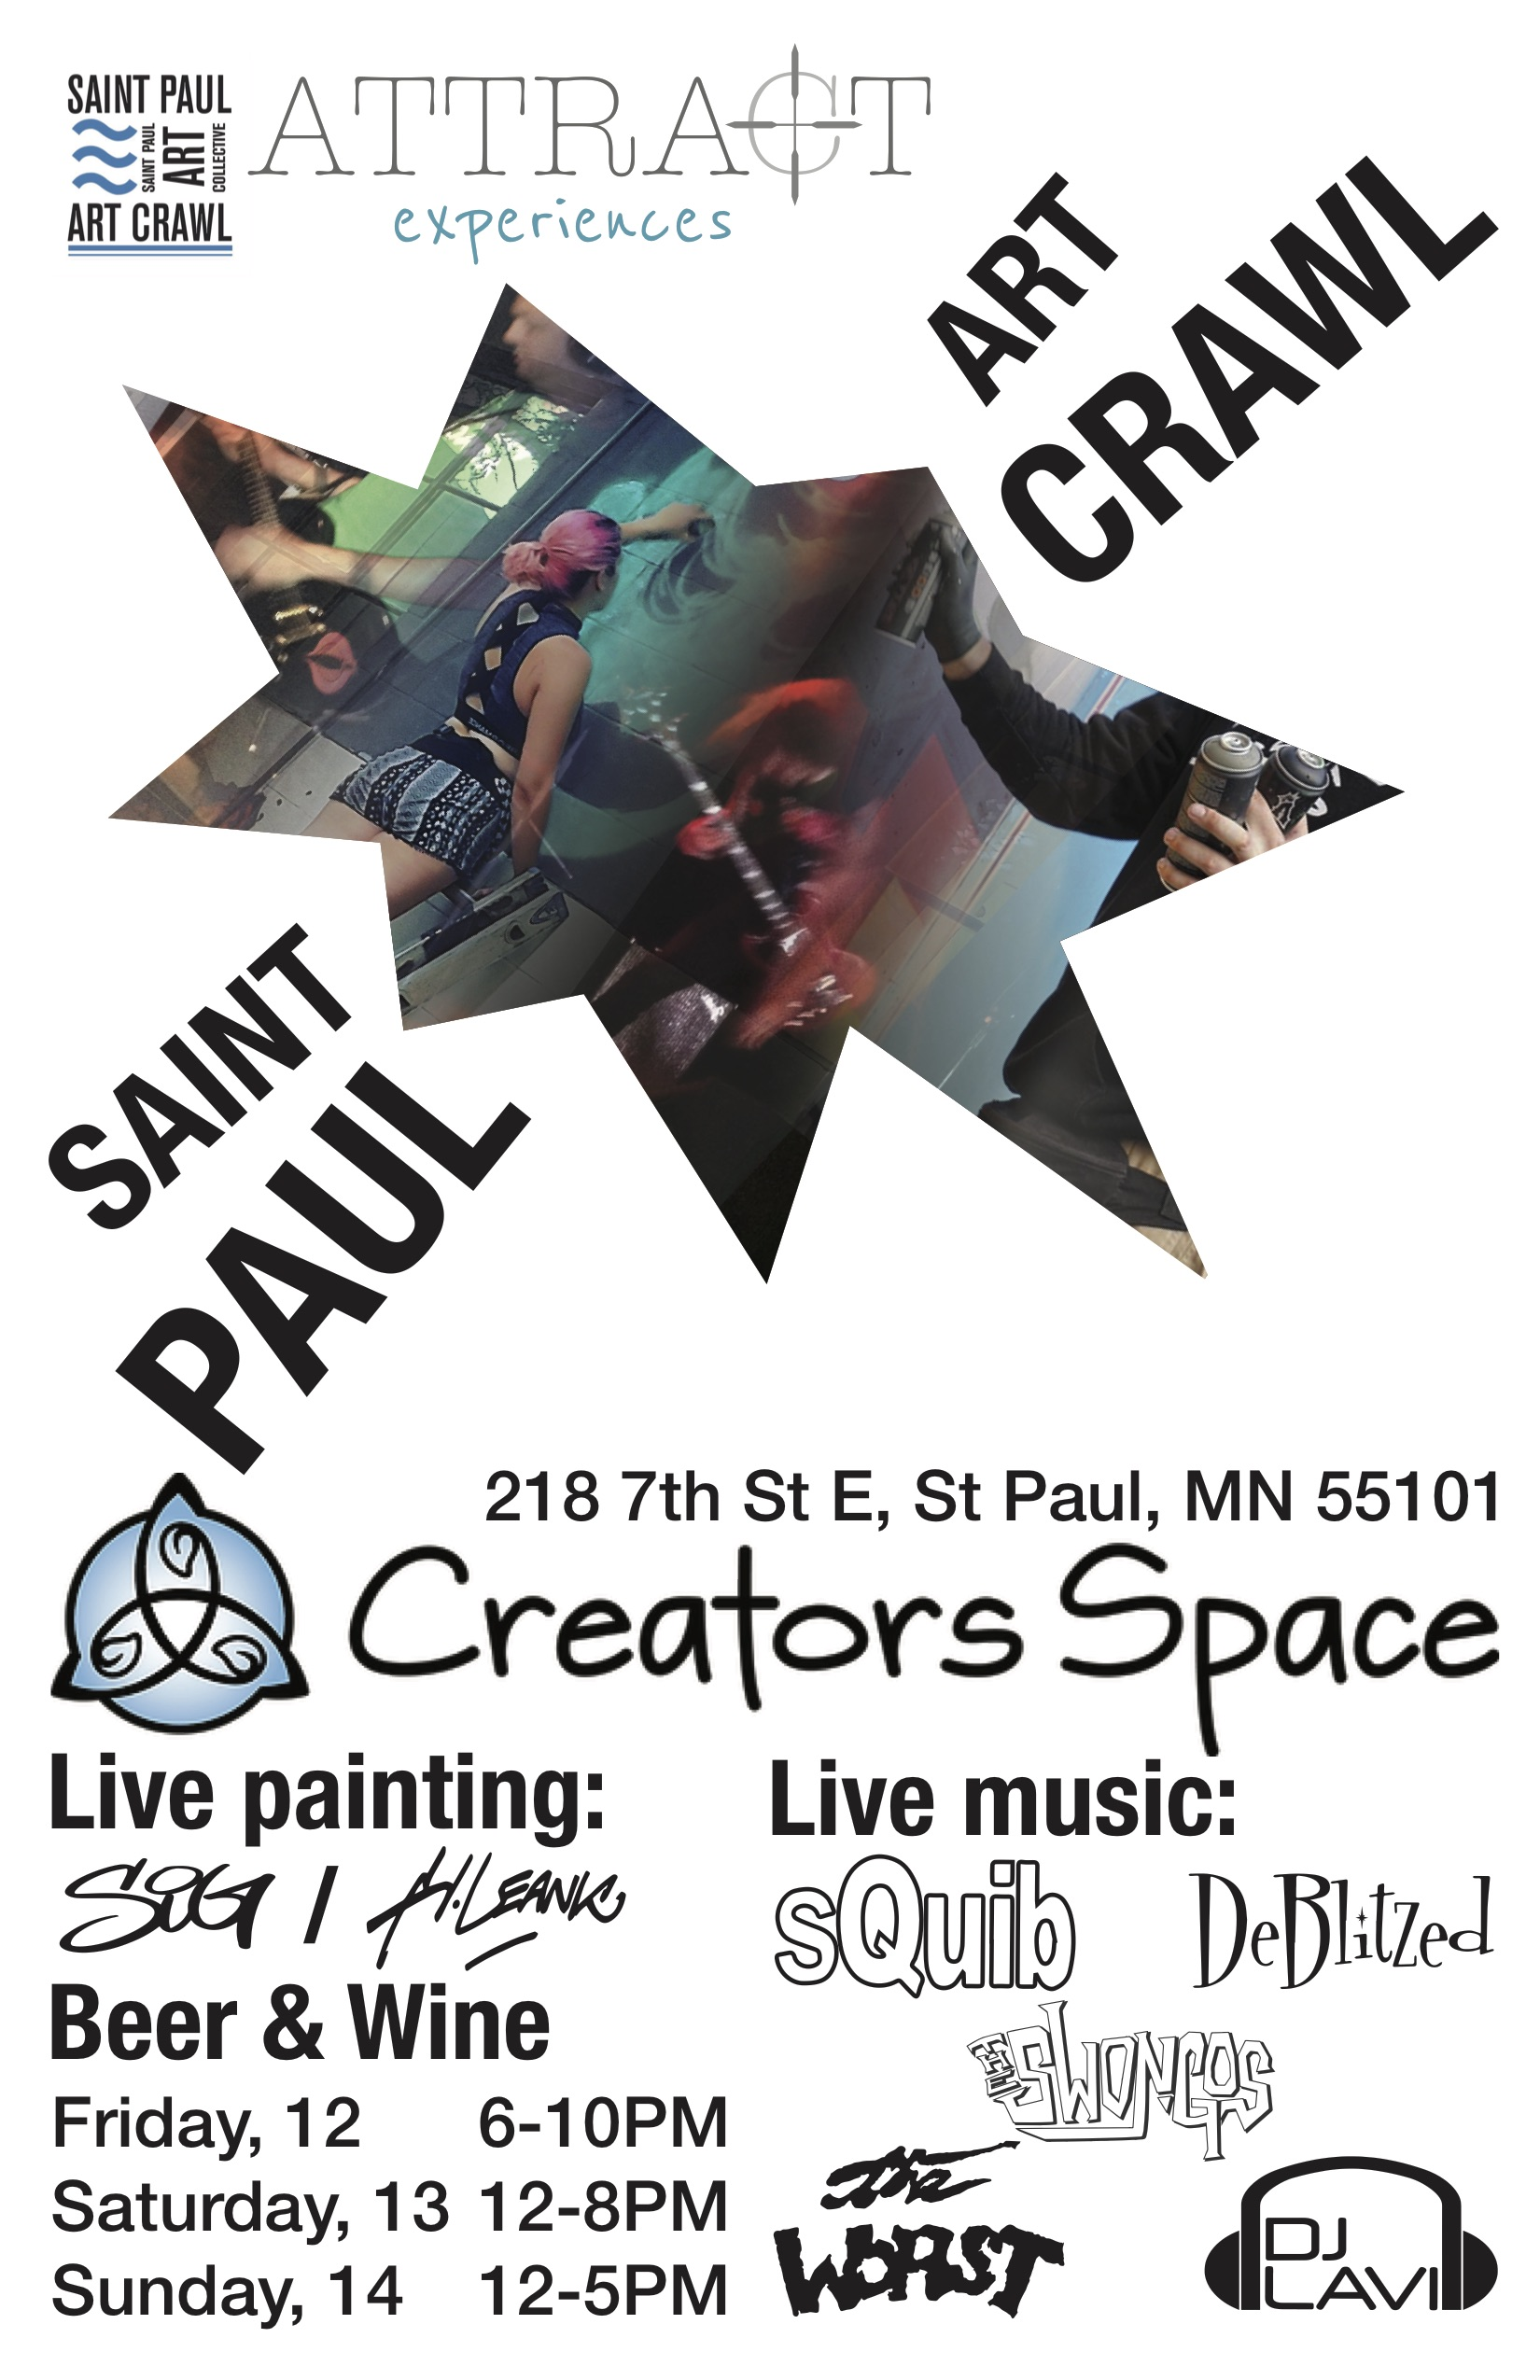 Saint Paul Art Crawl @ Creators Space